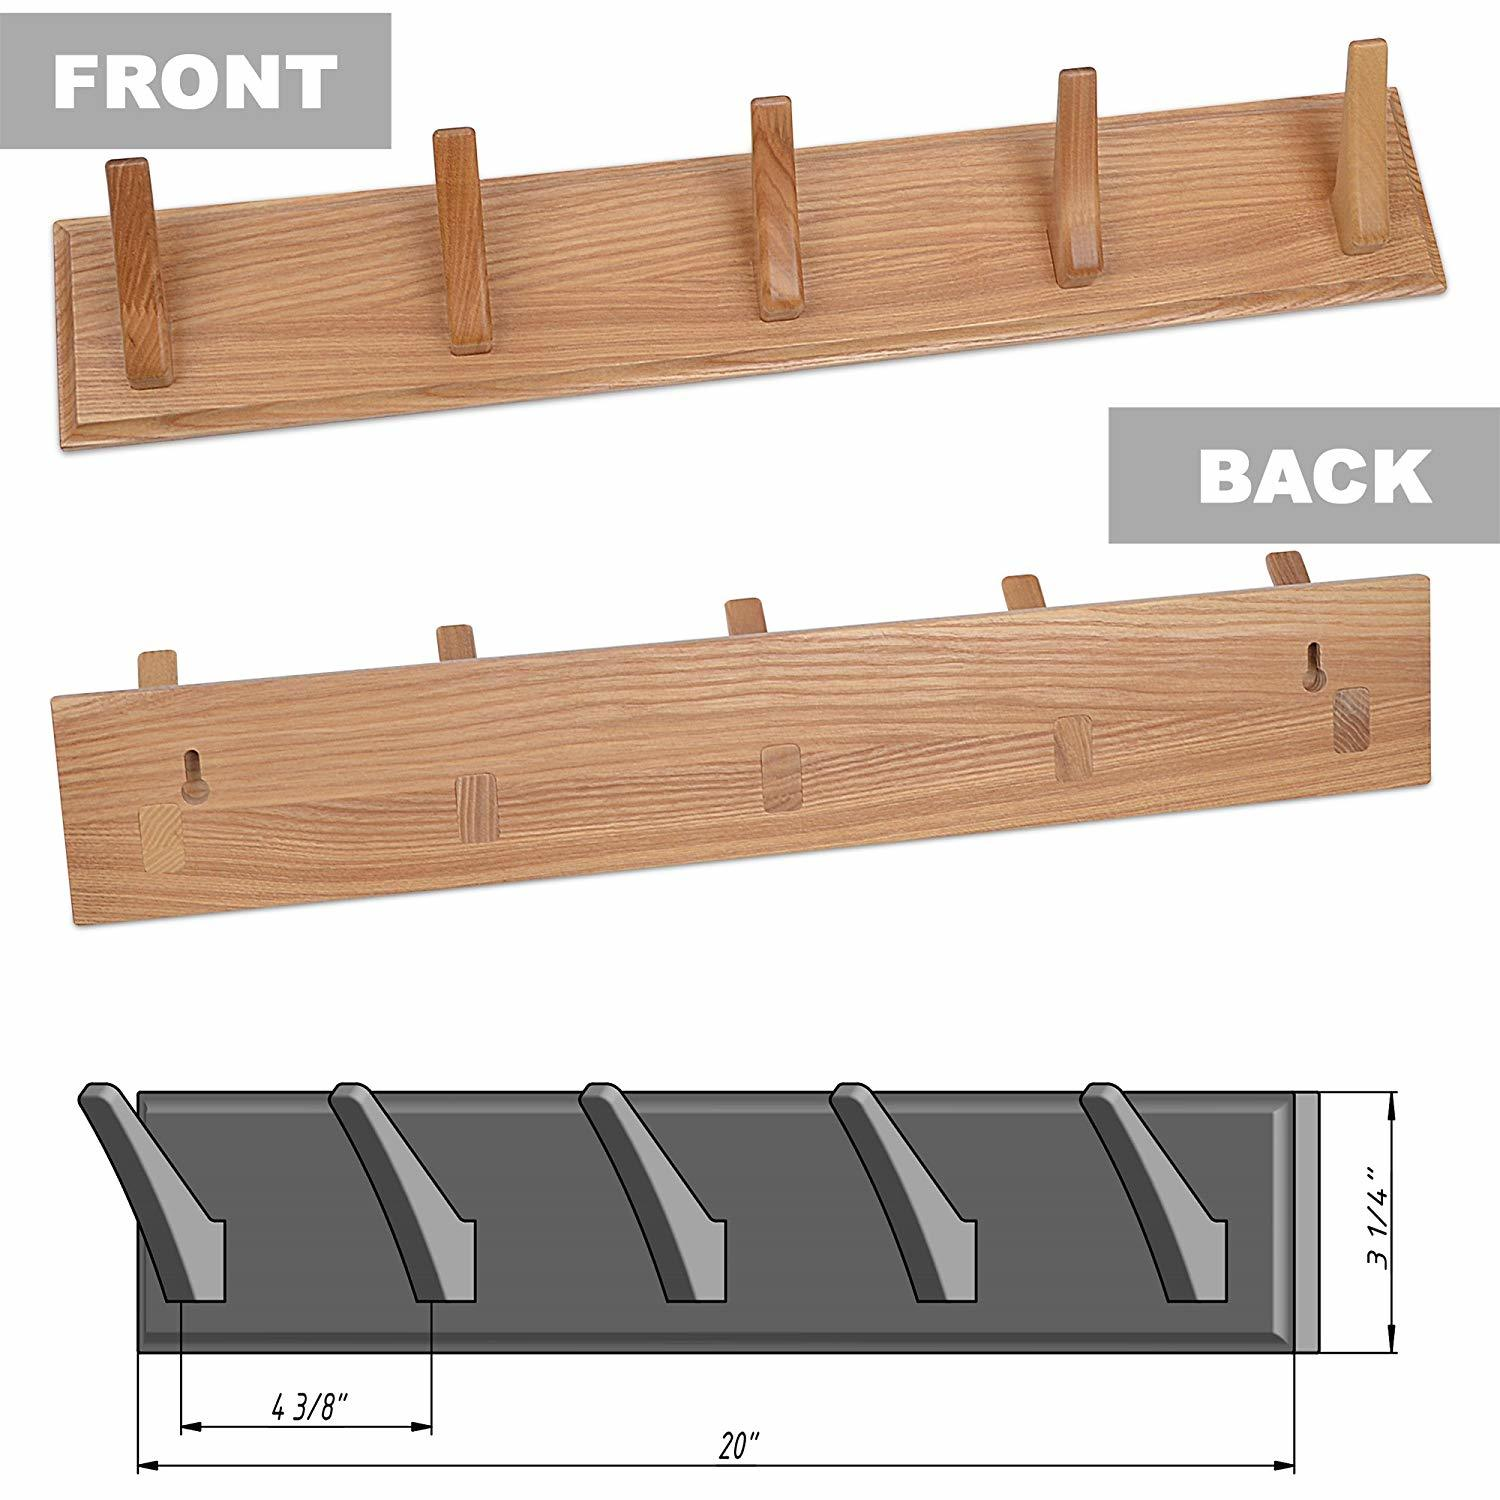 shoe storage hacks features wall mounted coat rack are manufactured from solid, natural wood (ash-tree)